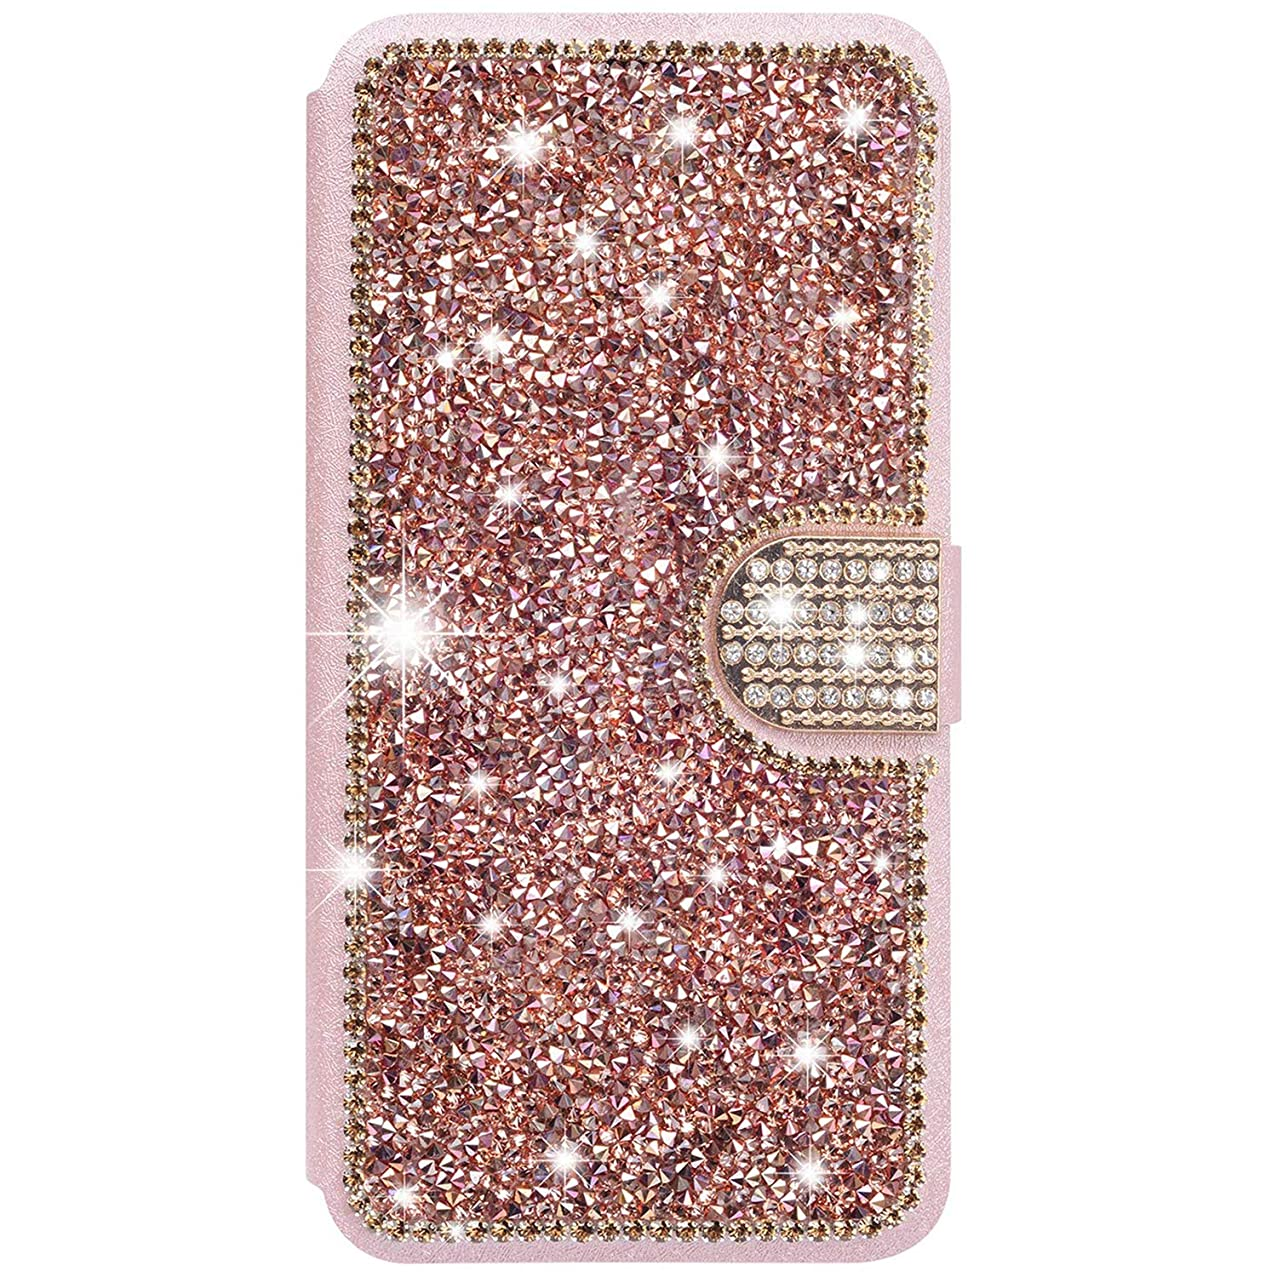 iPhone Xs Max Wallet Case,WATACHE Glitter Bling Diamond Folding Stand Folio Flip Protective Premium Leather Case with Card Holder + Magnetic Clasp Closure for Apple iPhone Xs Max-Shiny Rose Gold